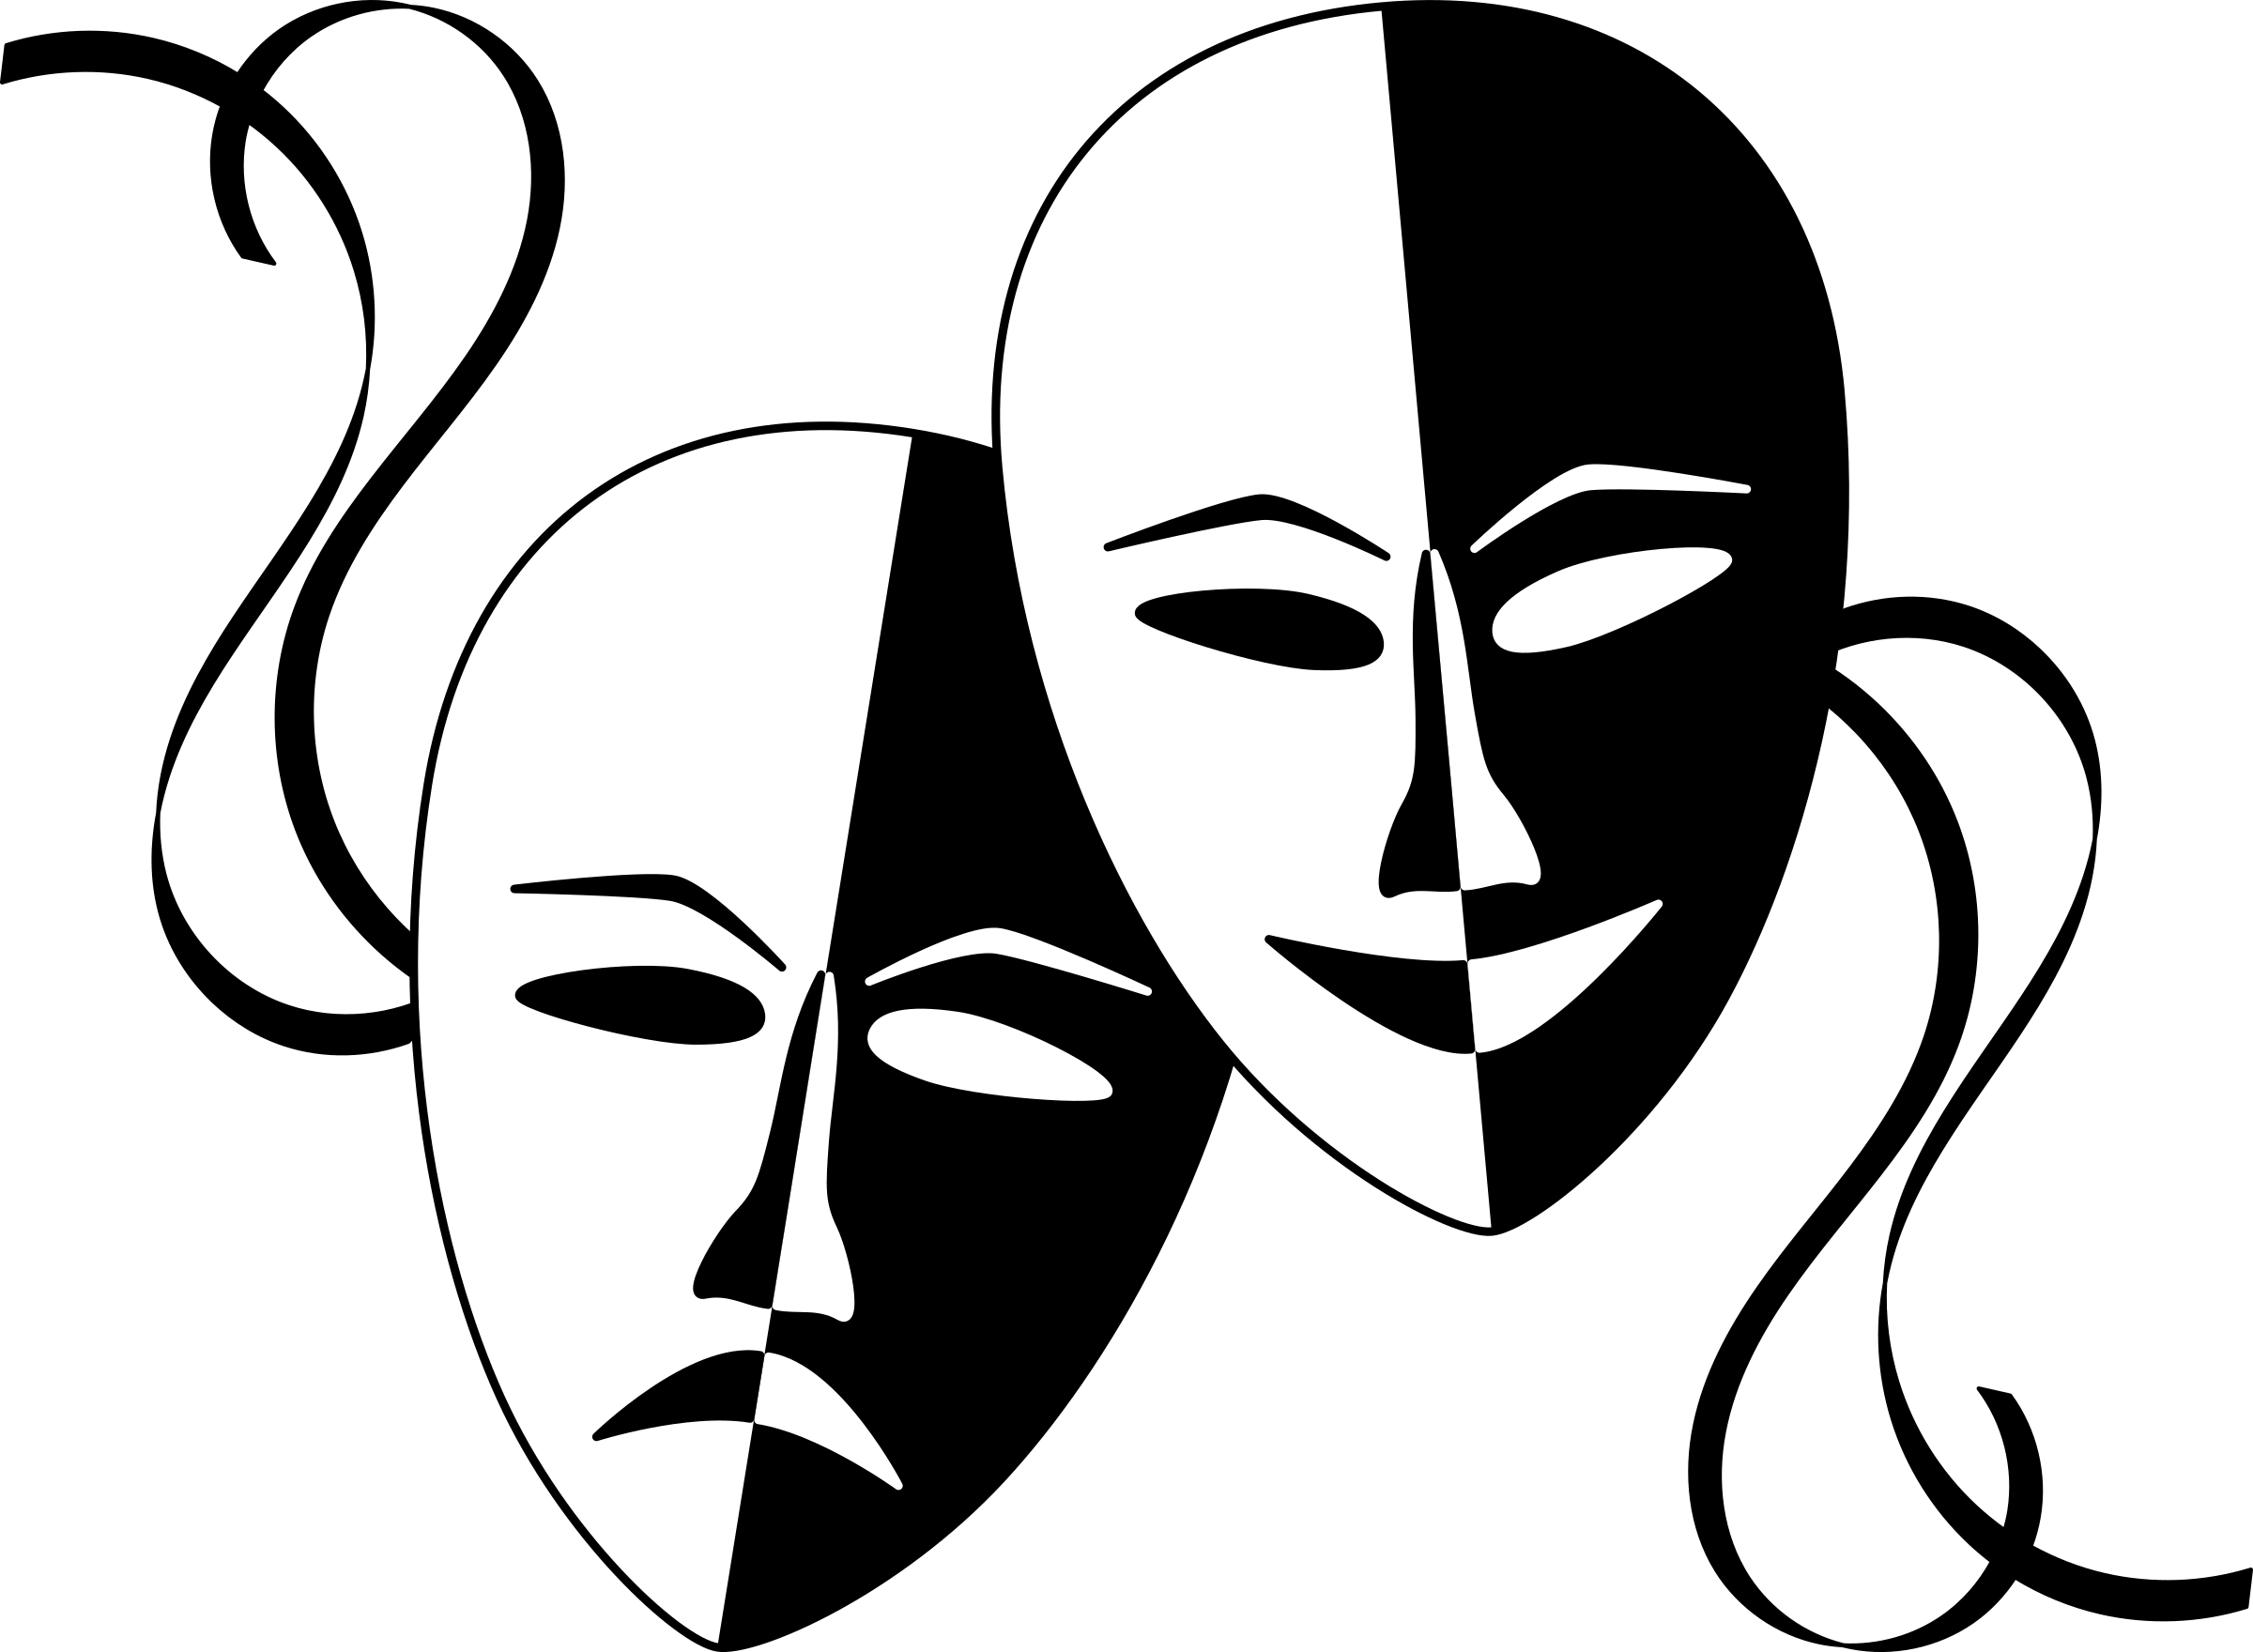 Theatre Masks by wasat